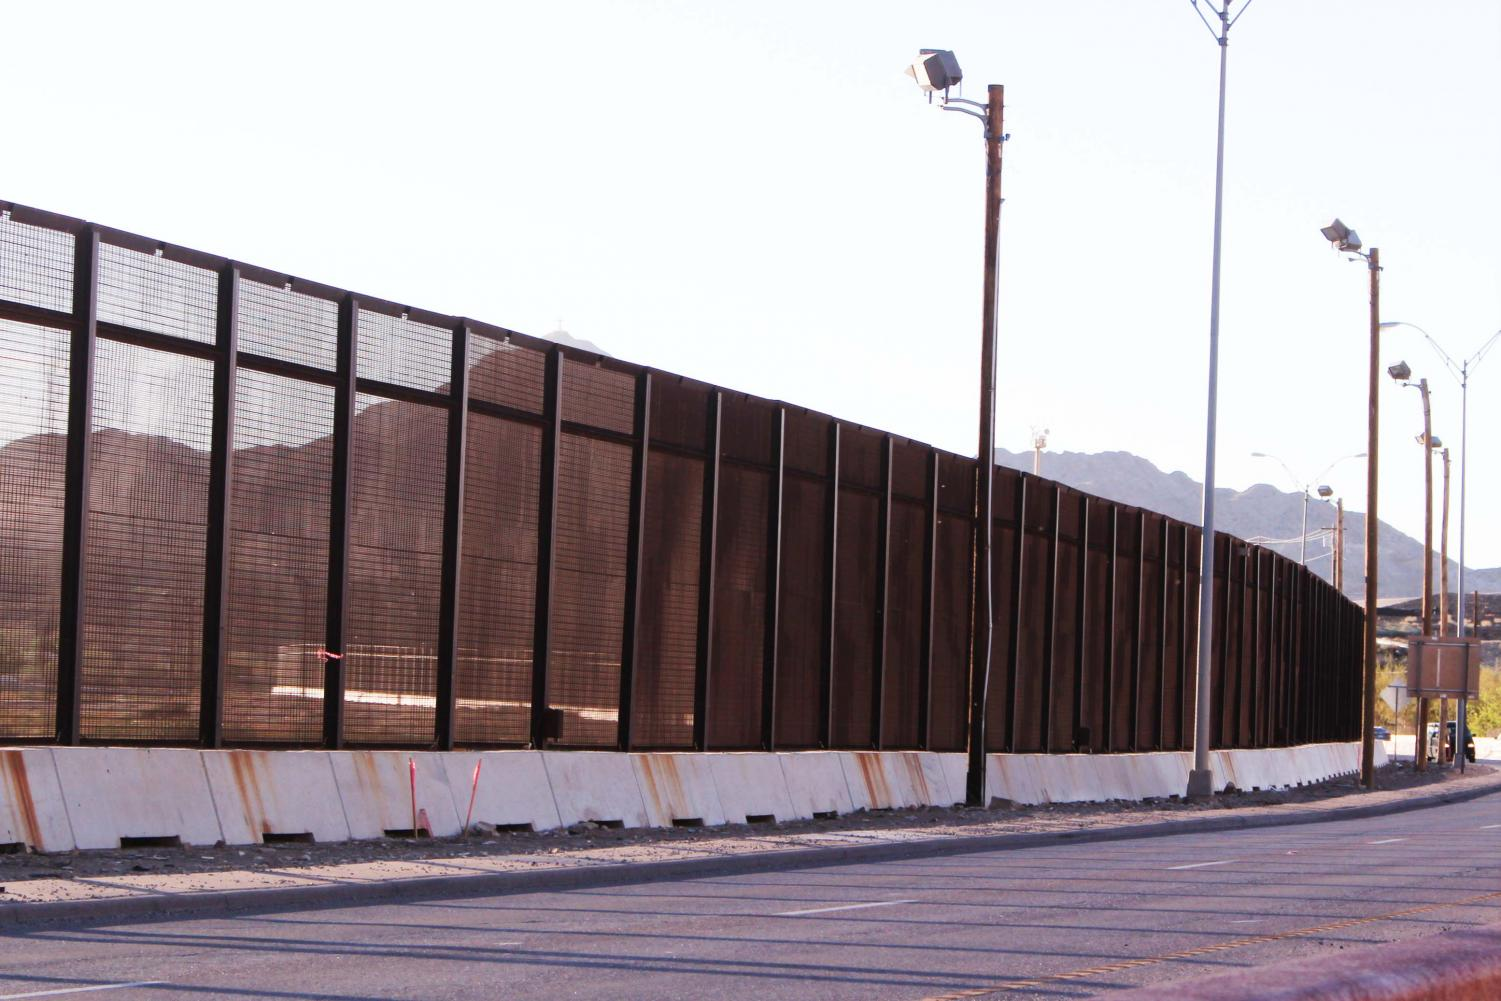 A recent episode in FRONTLINE, the PBS news documentary series, looks at how El Paso became a focal point in the Trump administration's immigration policies.